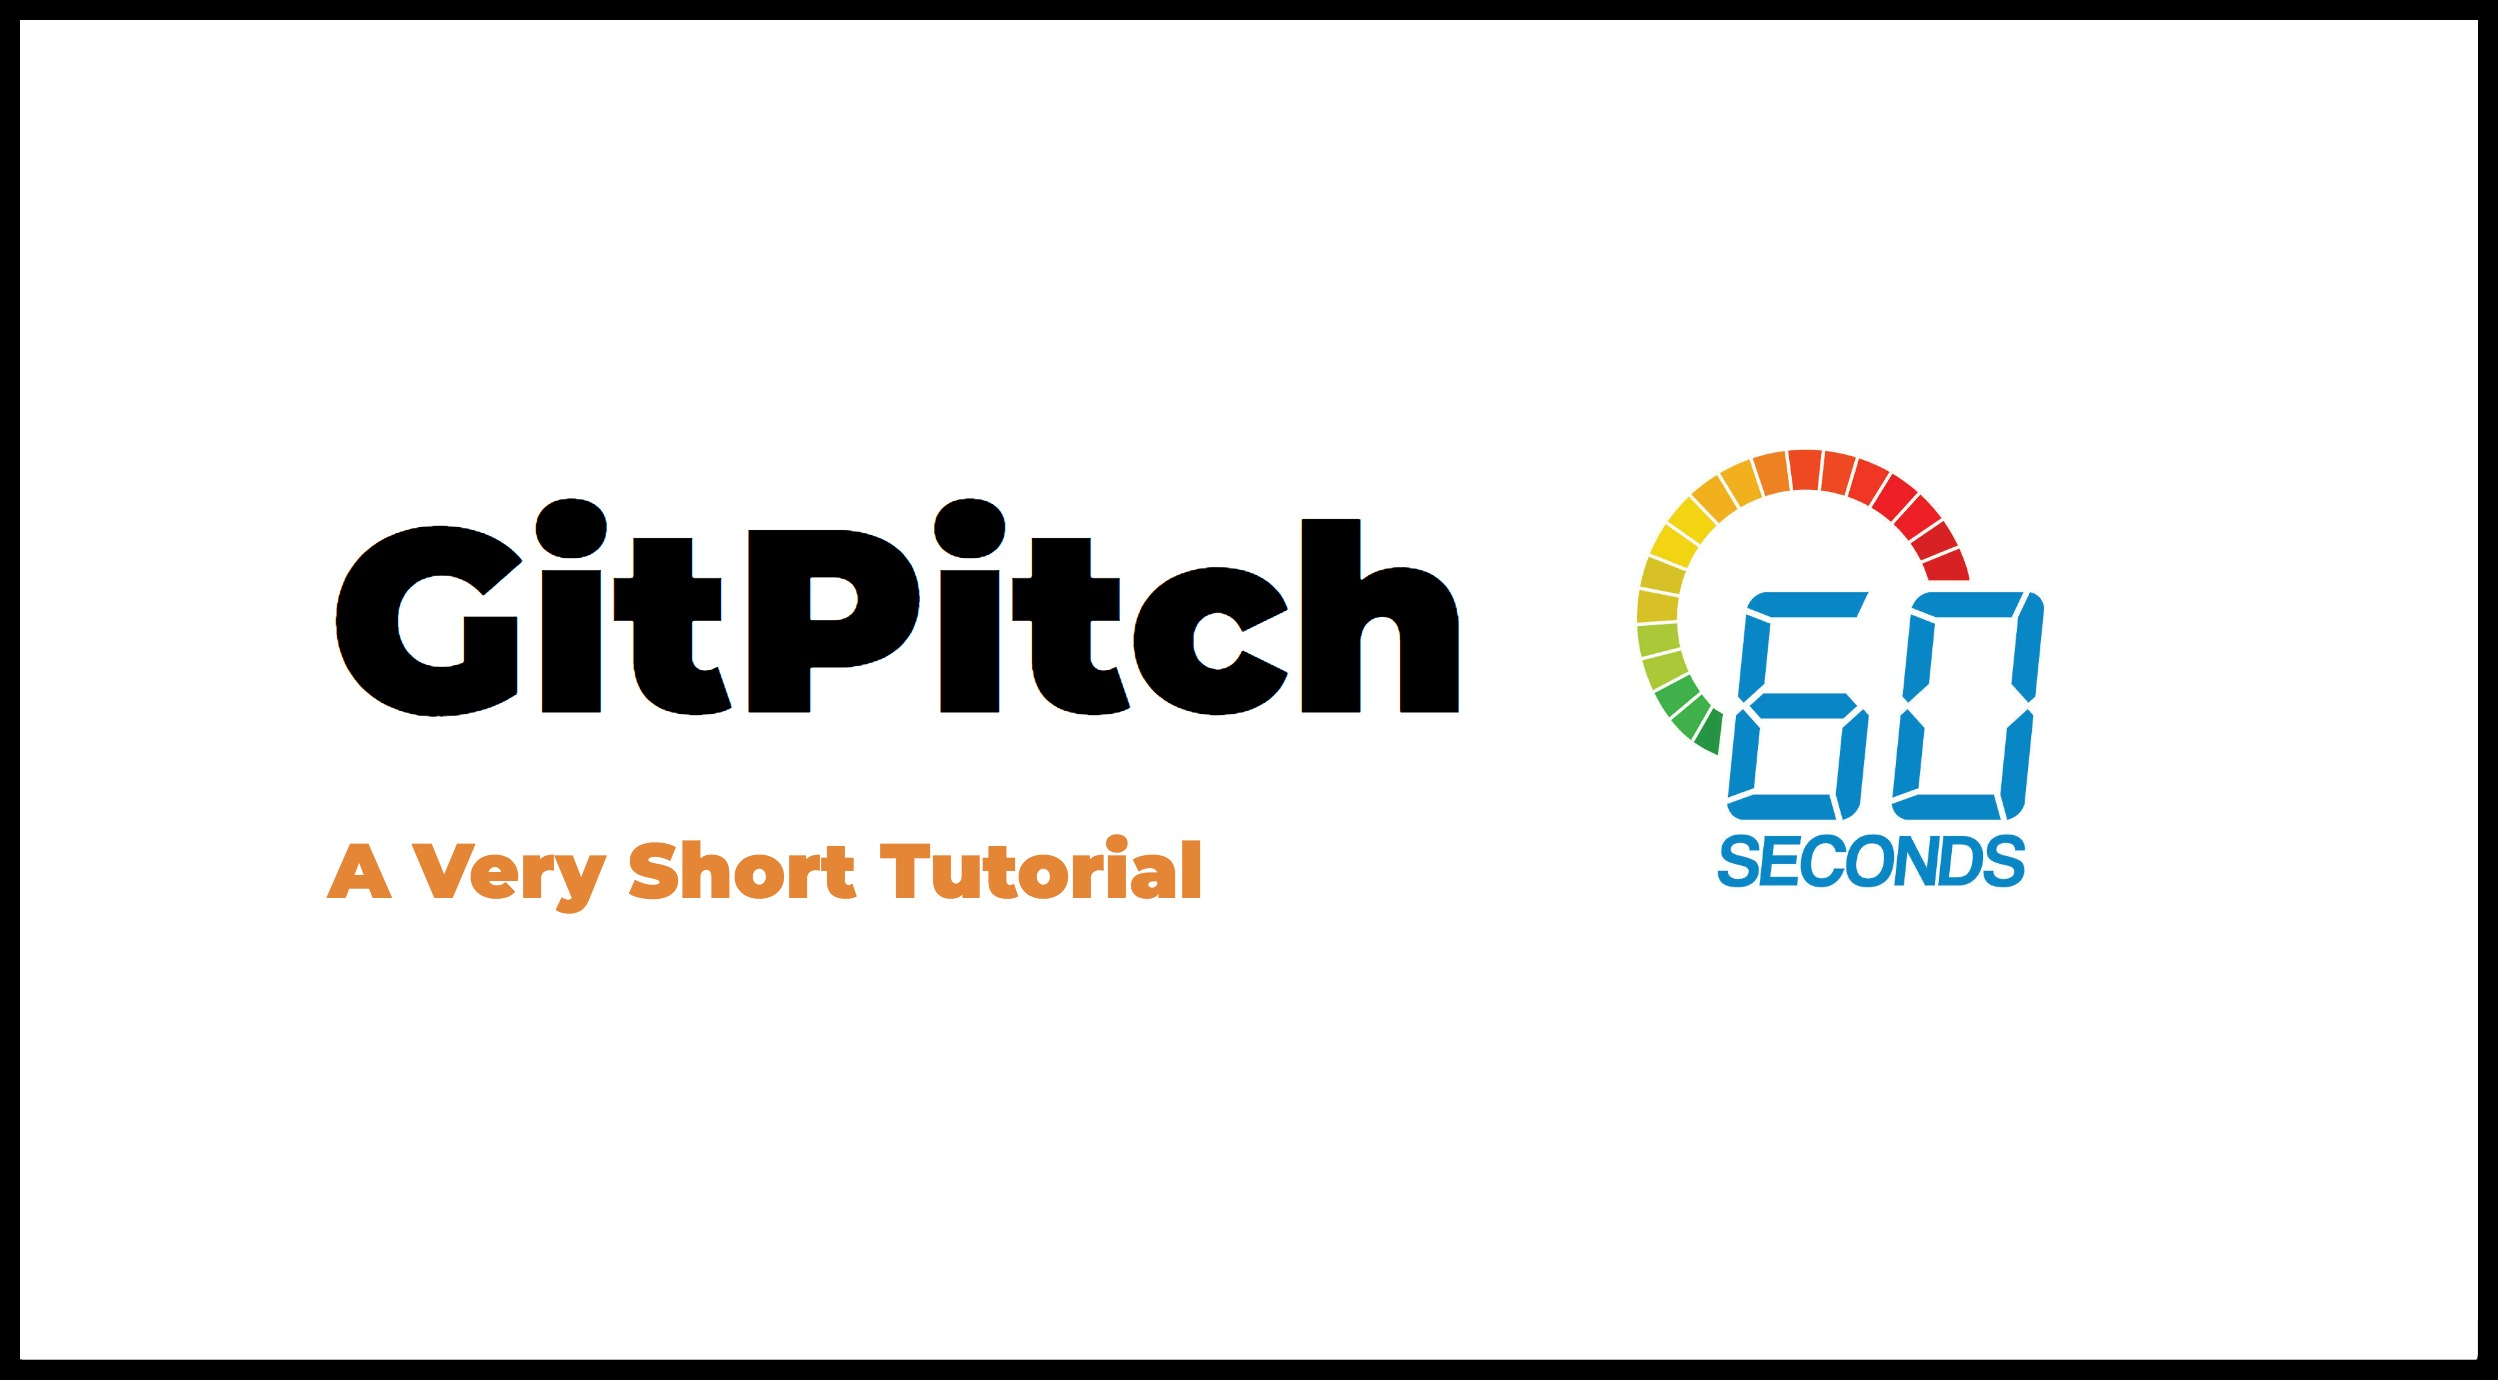 assets/images/gitpitch-in-60-seconds-tutorial.jpg